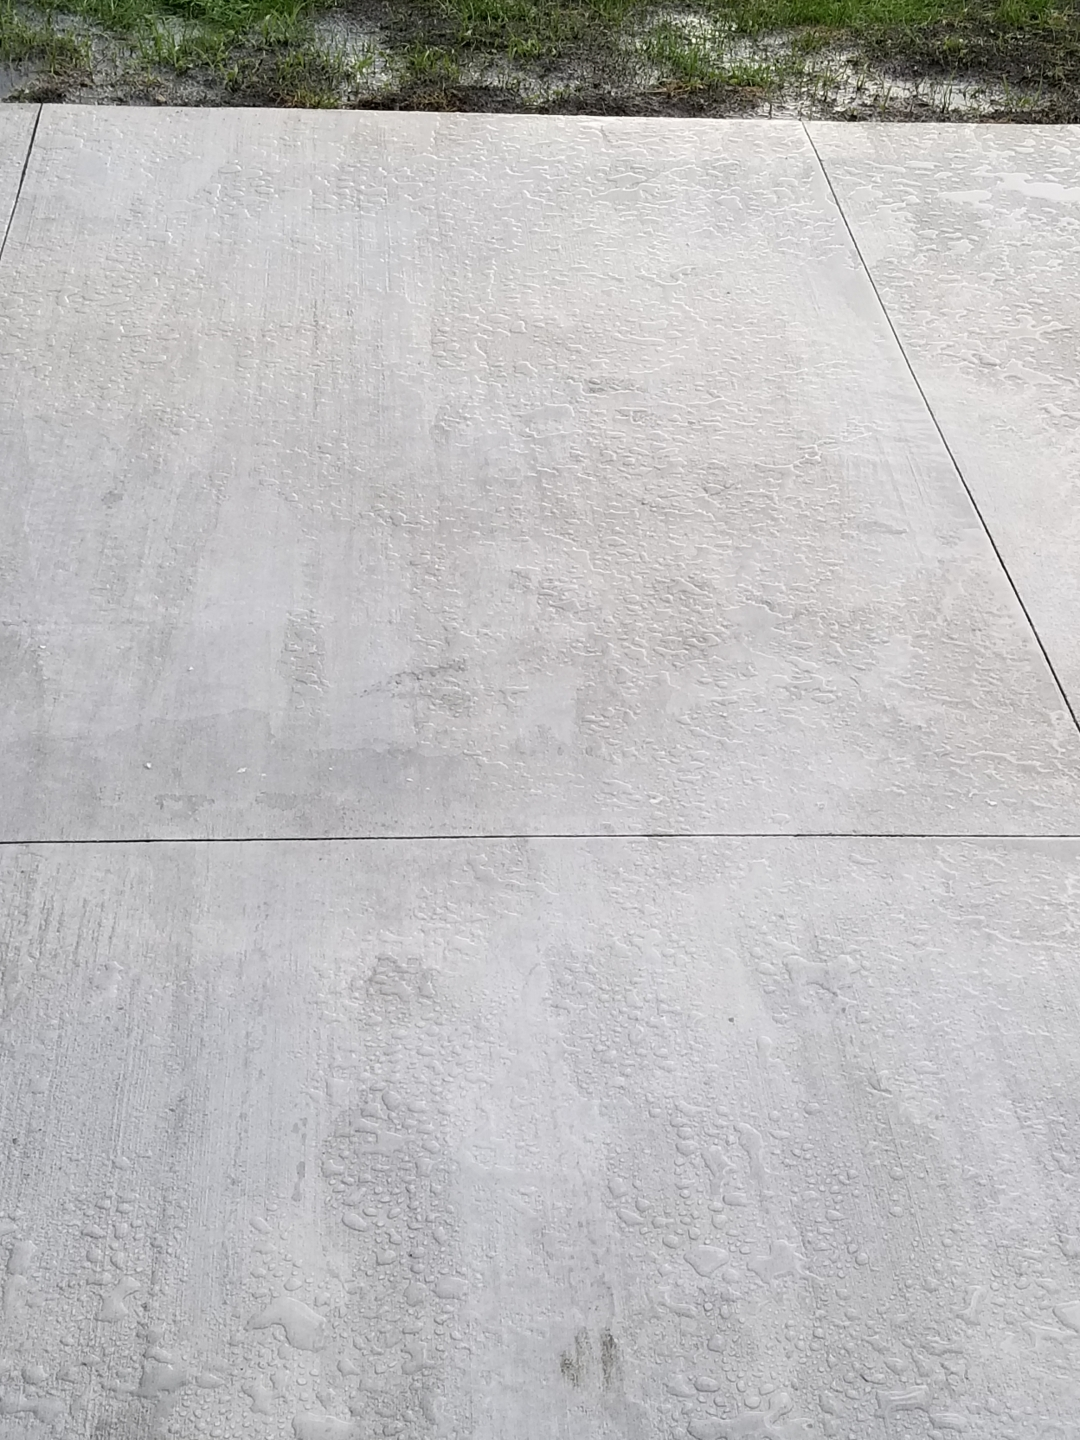 Ghostshield Lithi-Tek 9500 Concrete Sealer